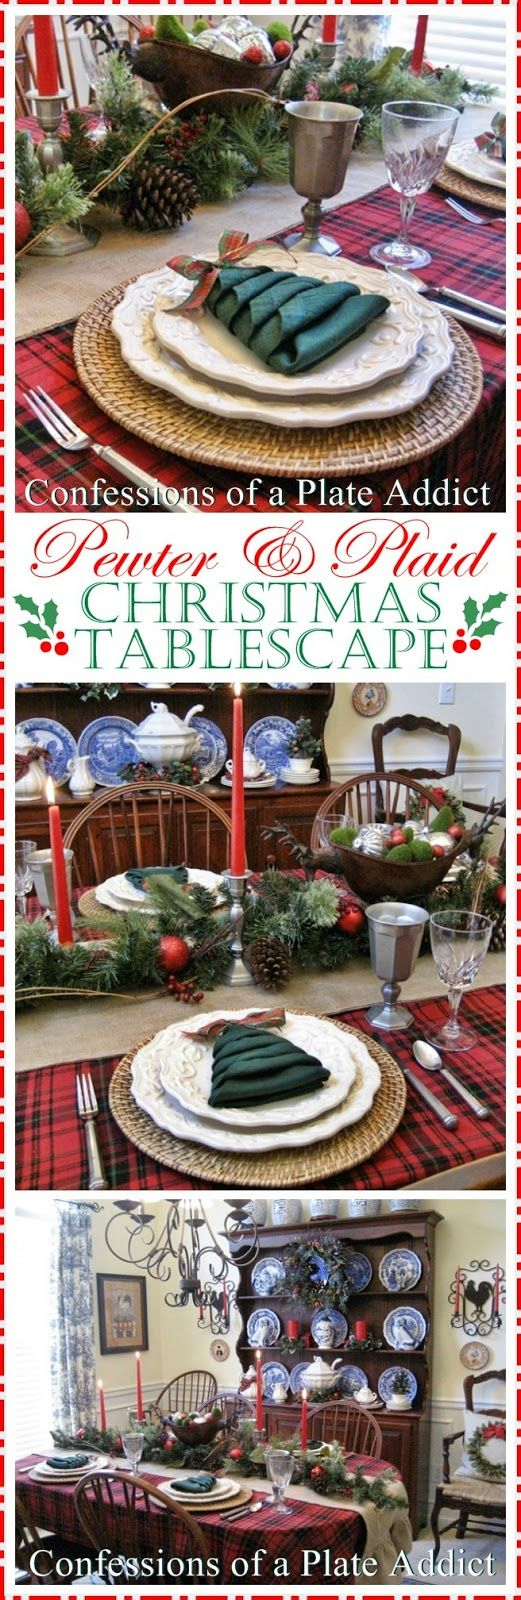 CONFESSIONS OF A PLATE ADDICT: Pewter and Plaid Christmas Tablescape...with a Fun Christmas Tree Napkin Fold!